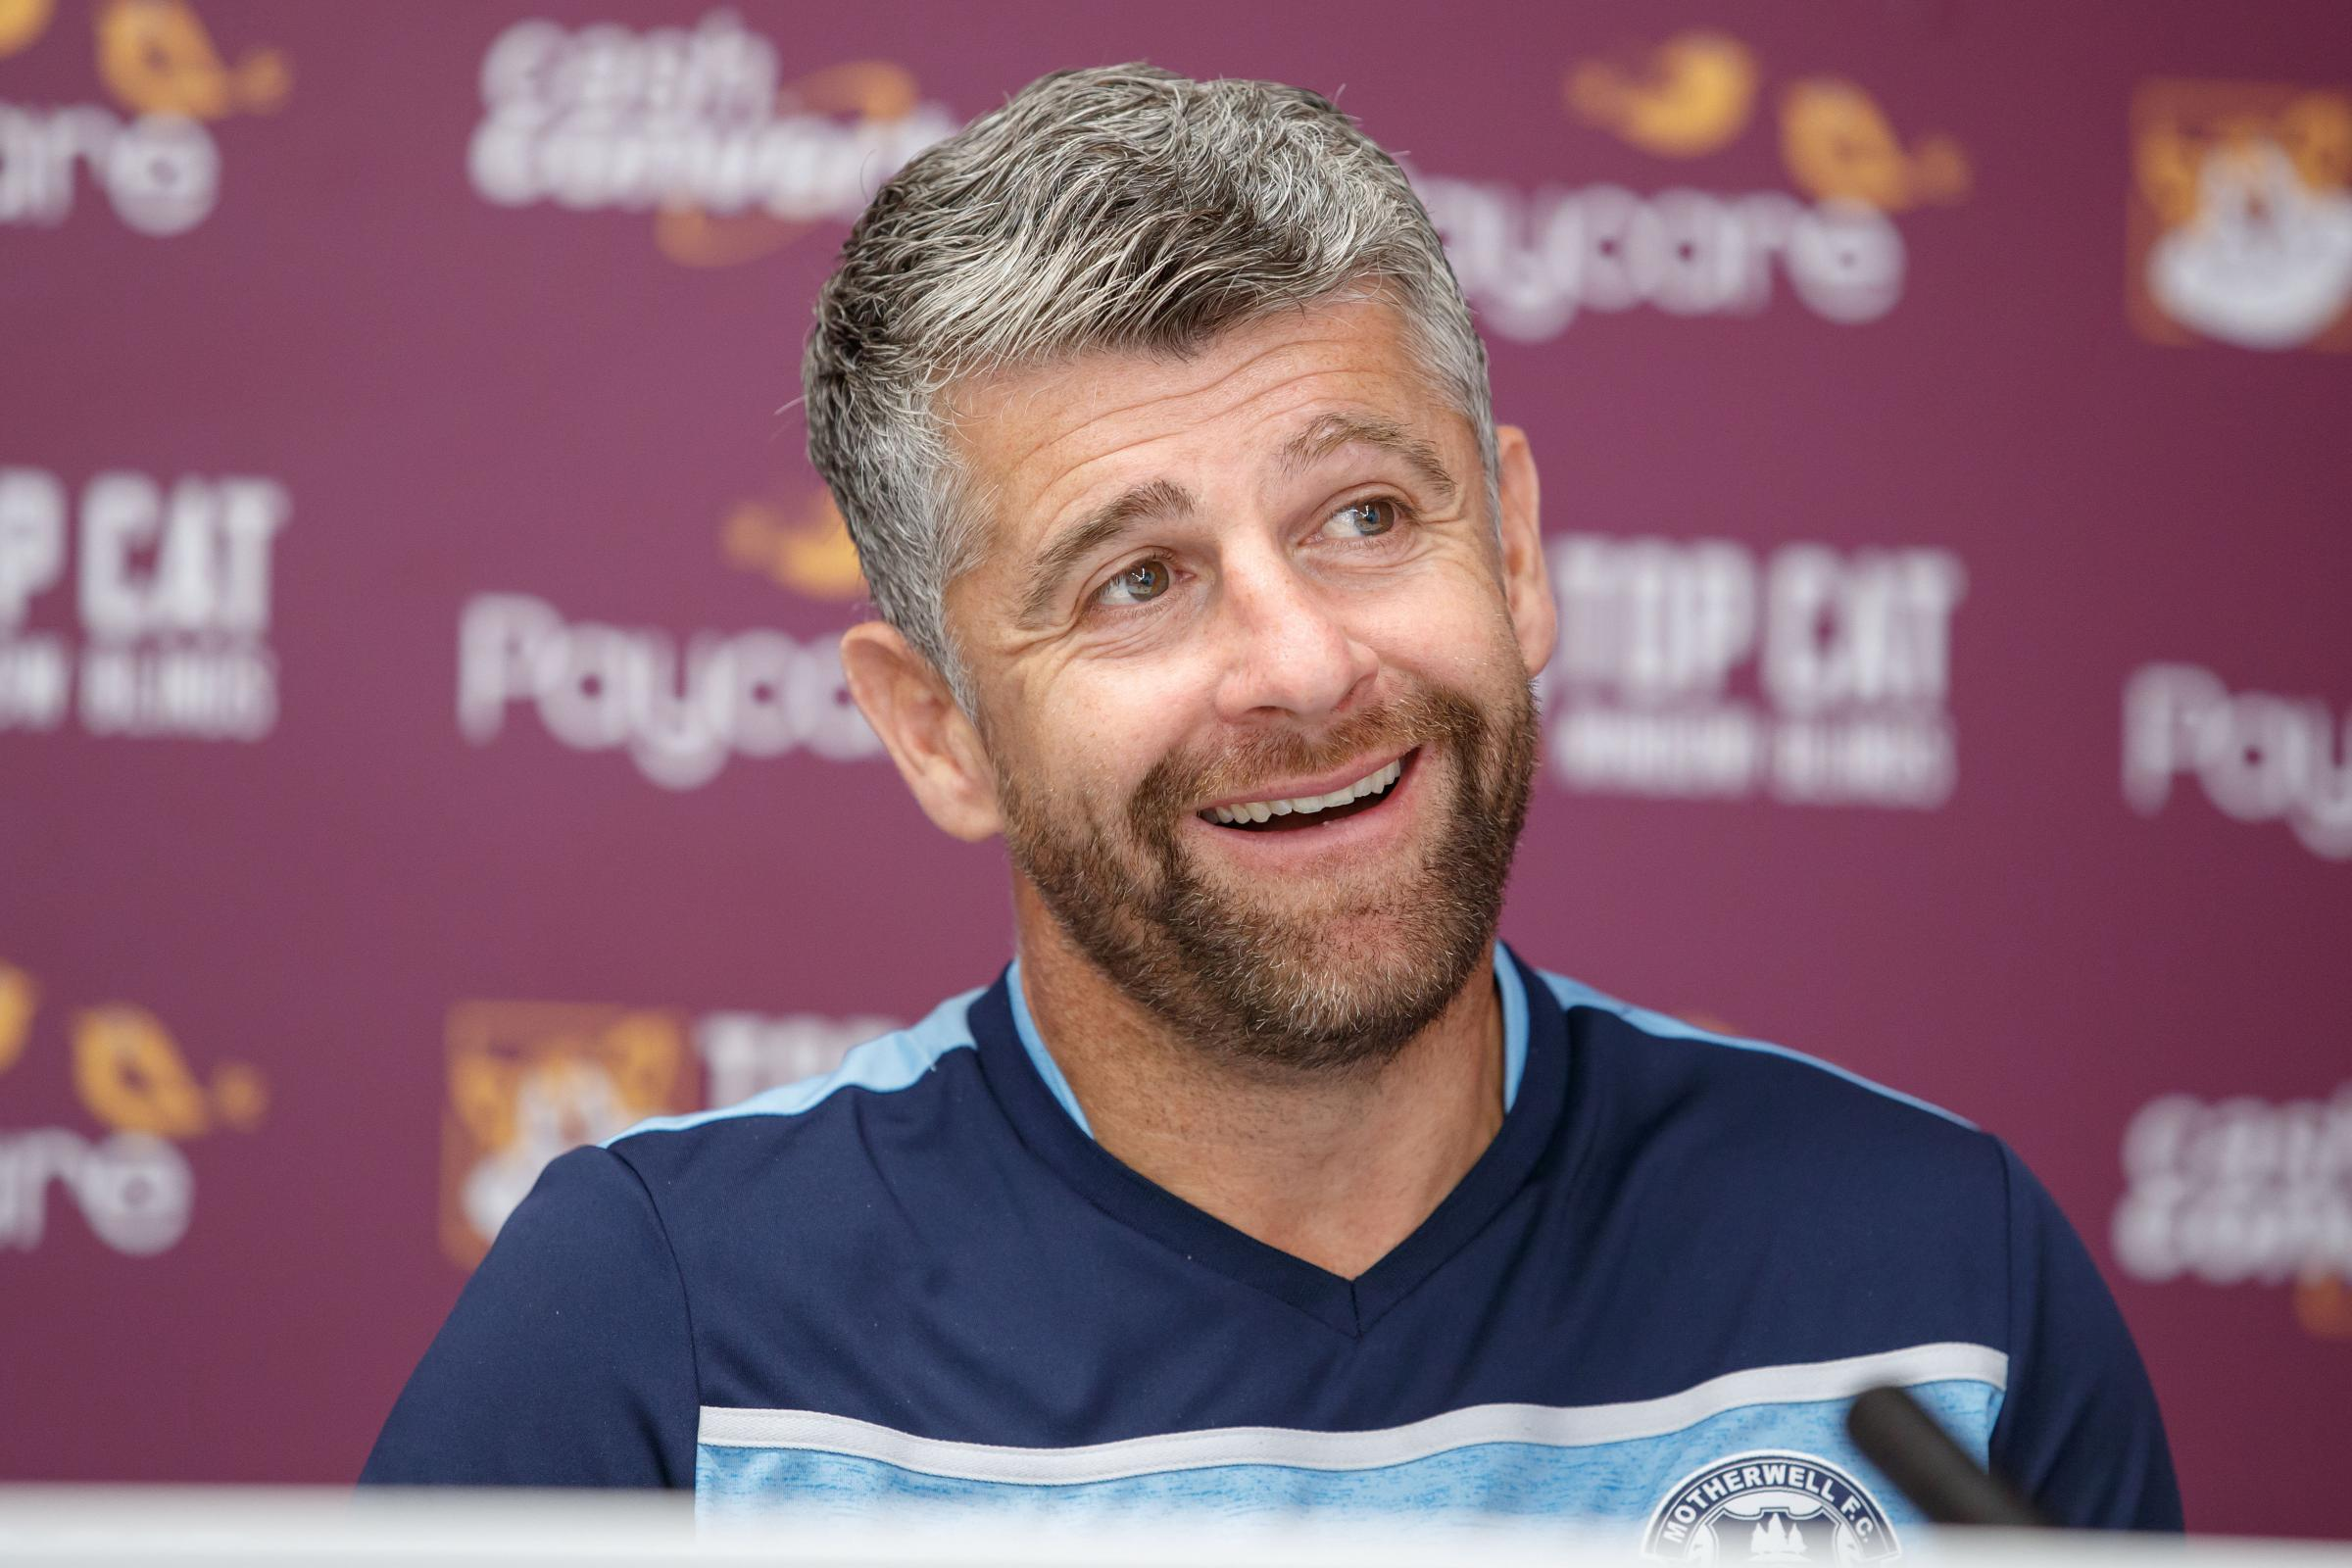 Stephen Robinson feels he has been through FaceApp at Motherwell, but is delighted to continue going through the wringer